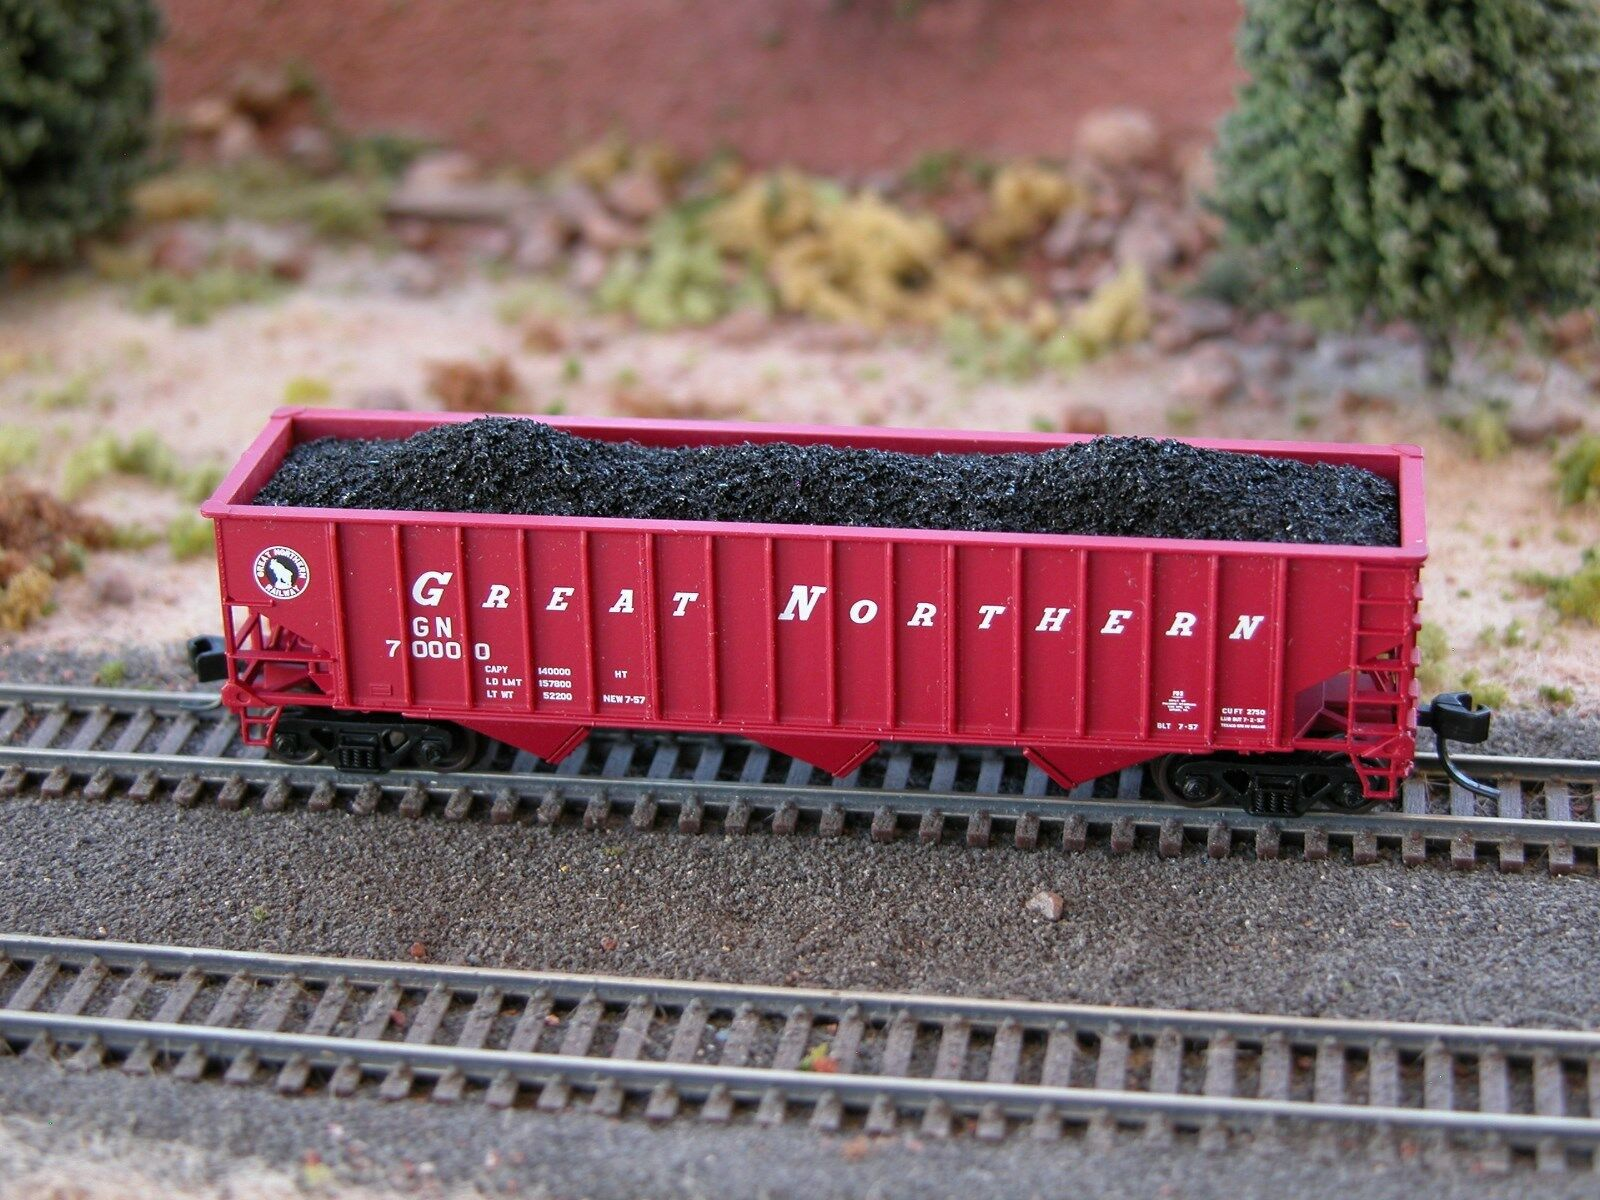 N Scale - Hay Bros - 7010 09 - Load - Painted/Unlettered - Multi-Hump Coal